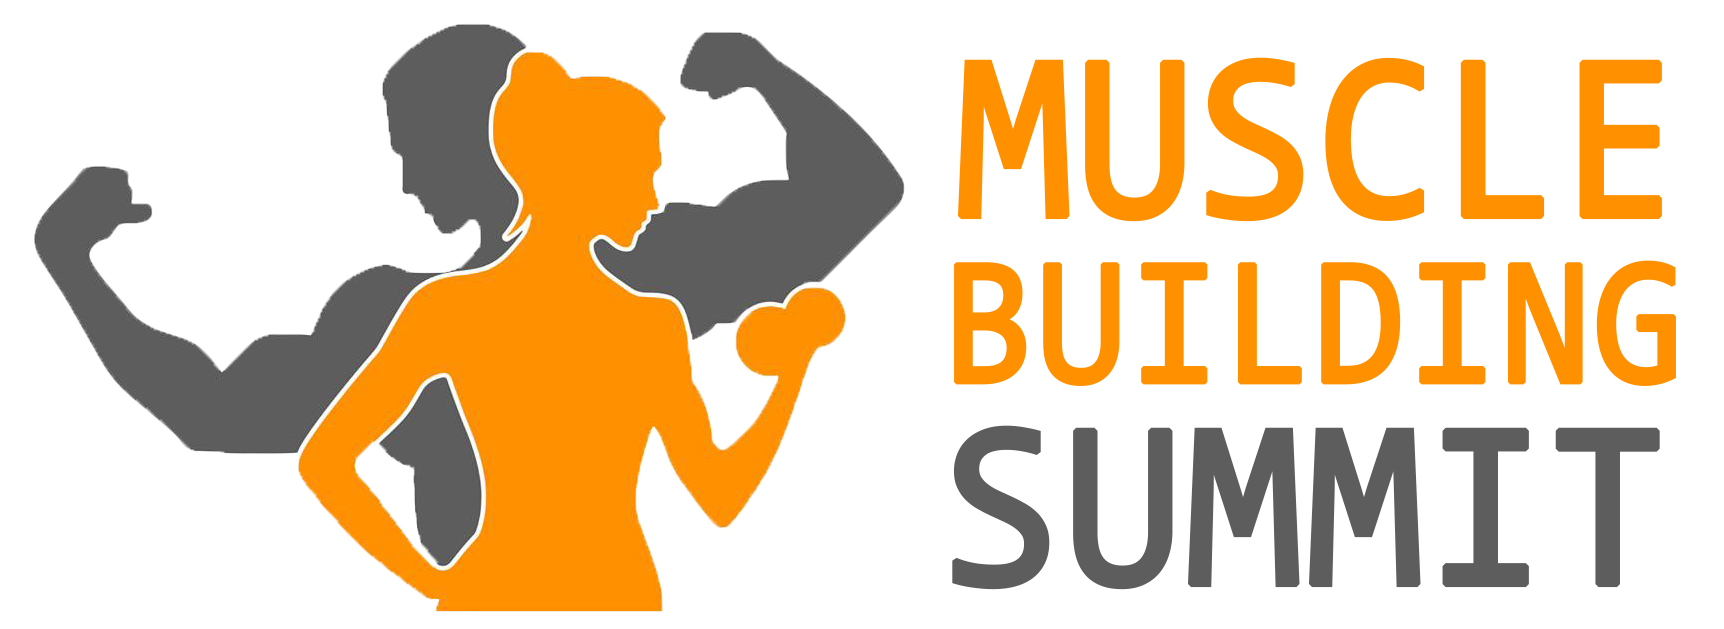 Dumbbells clipart exercise science. Muscle building summit